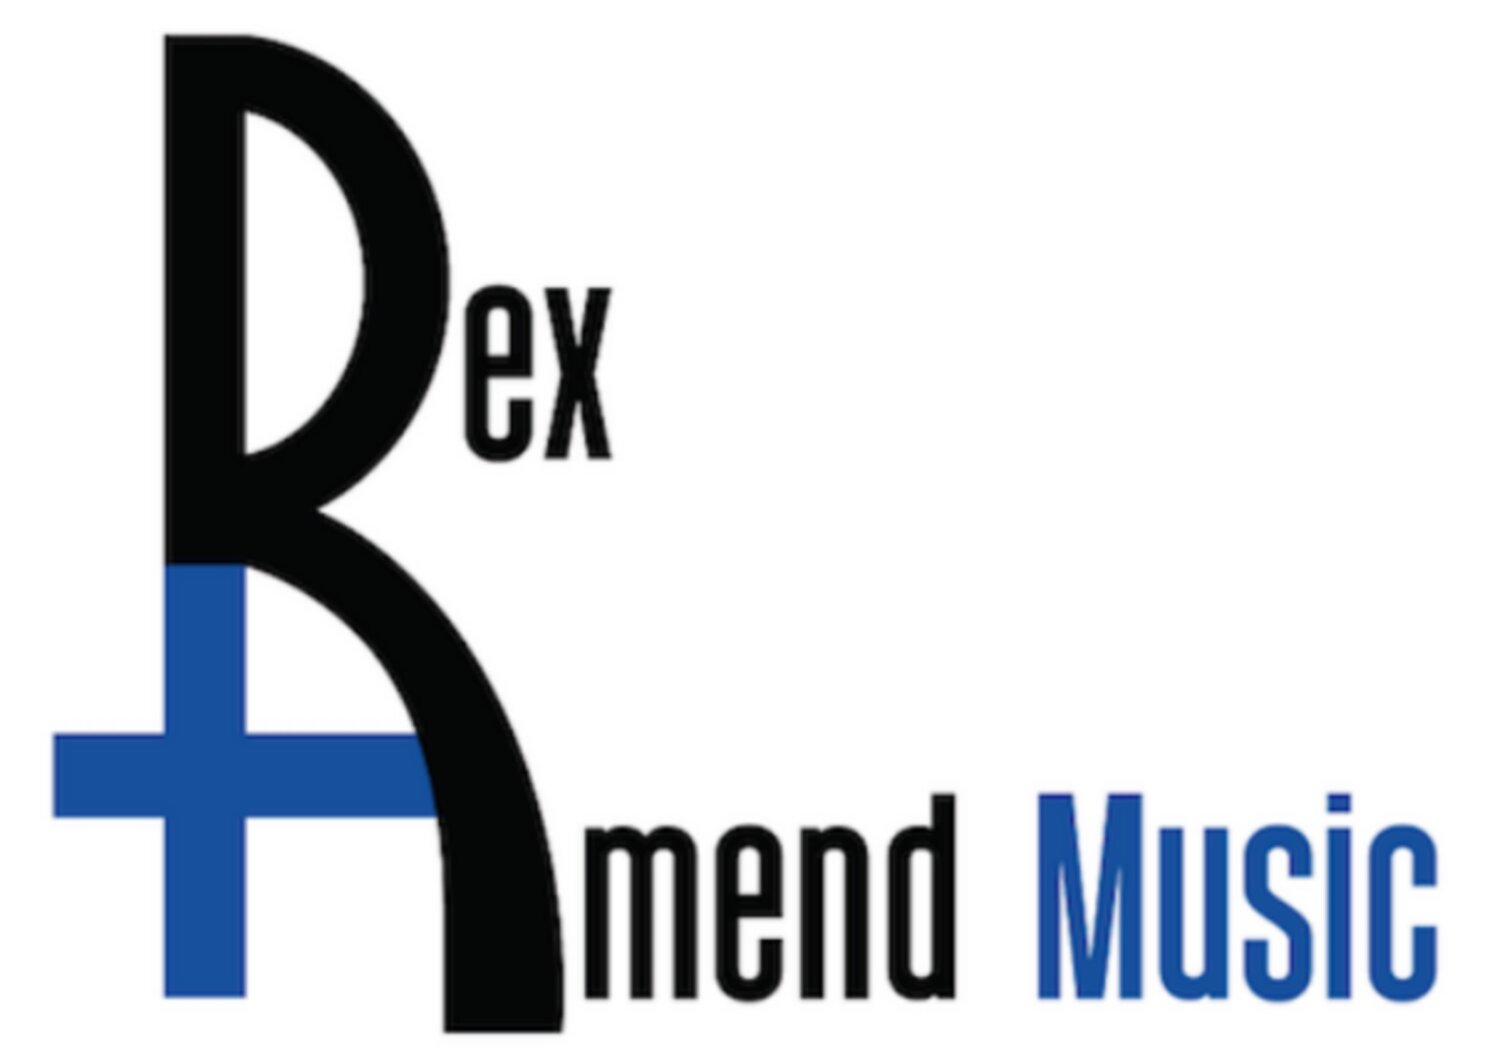 Rex Amend Music